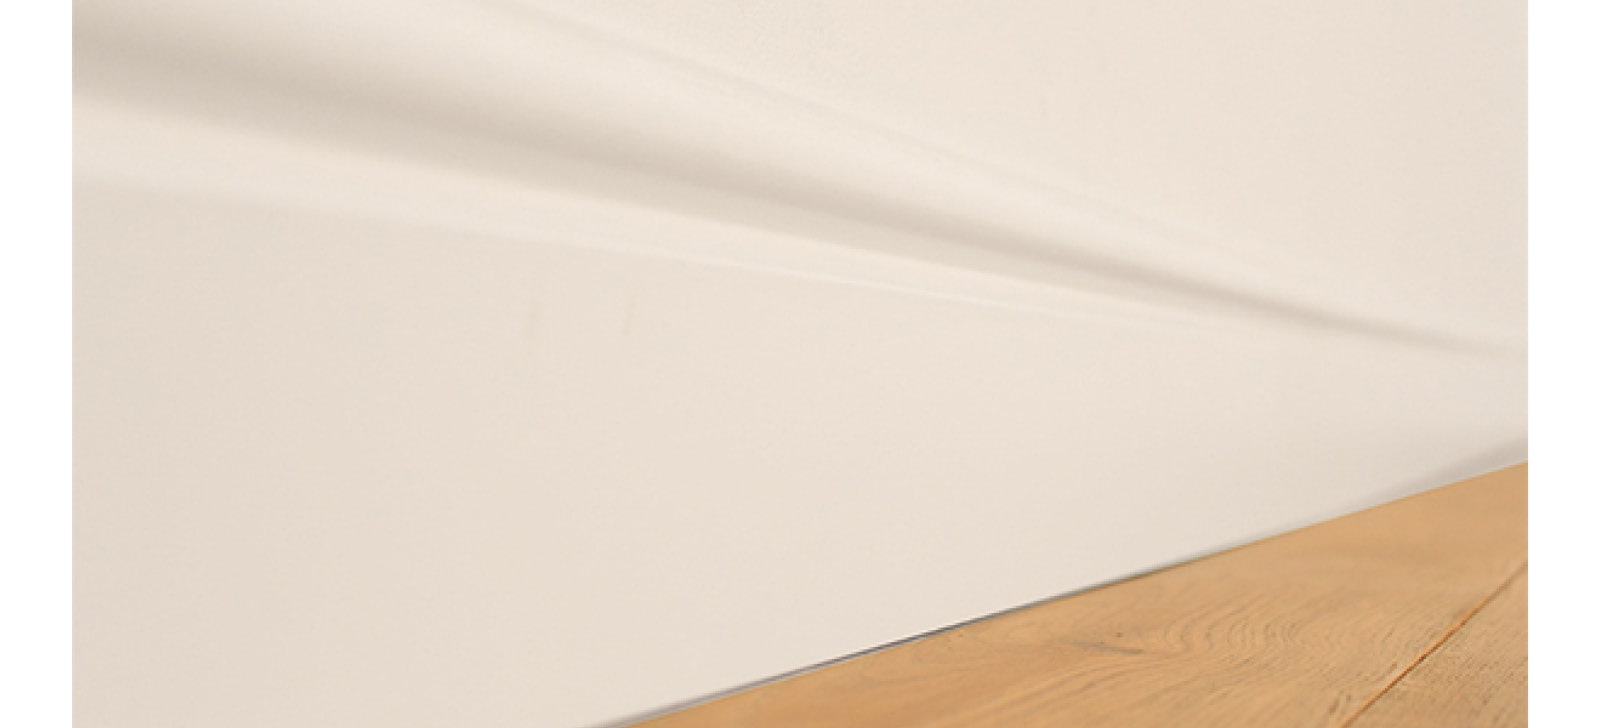 White skirting with wooden floor